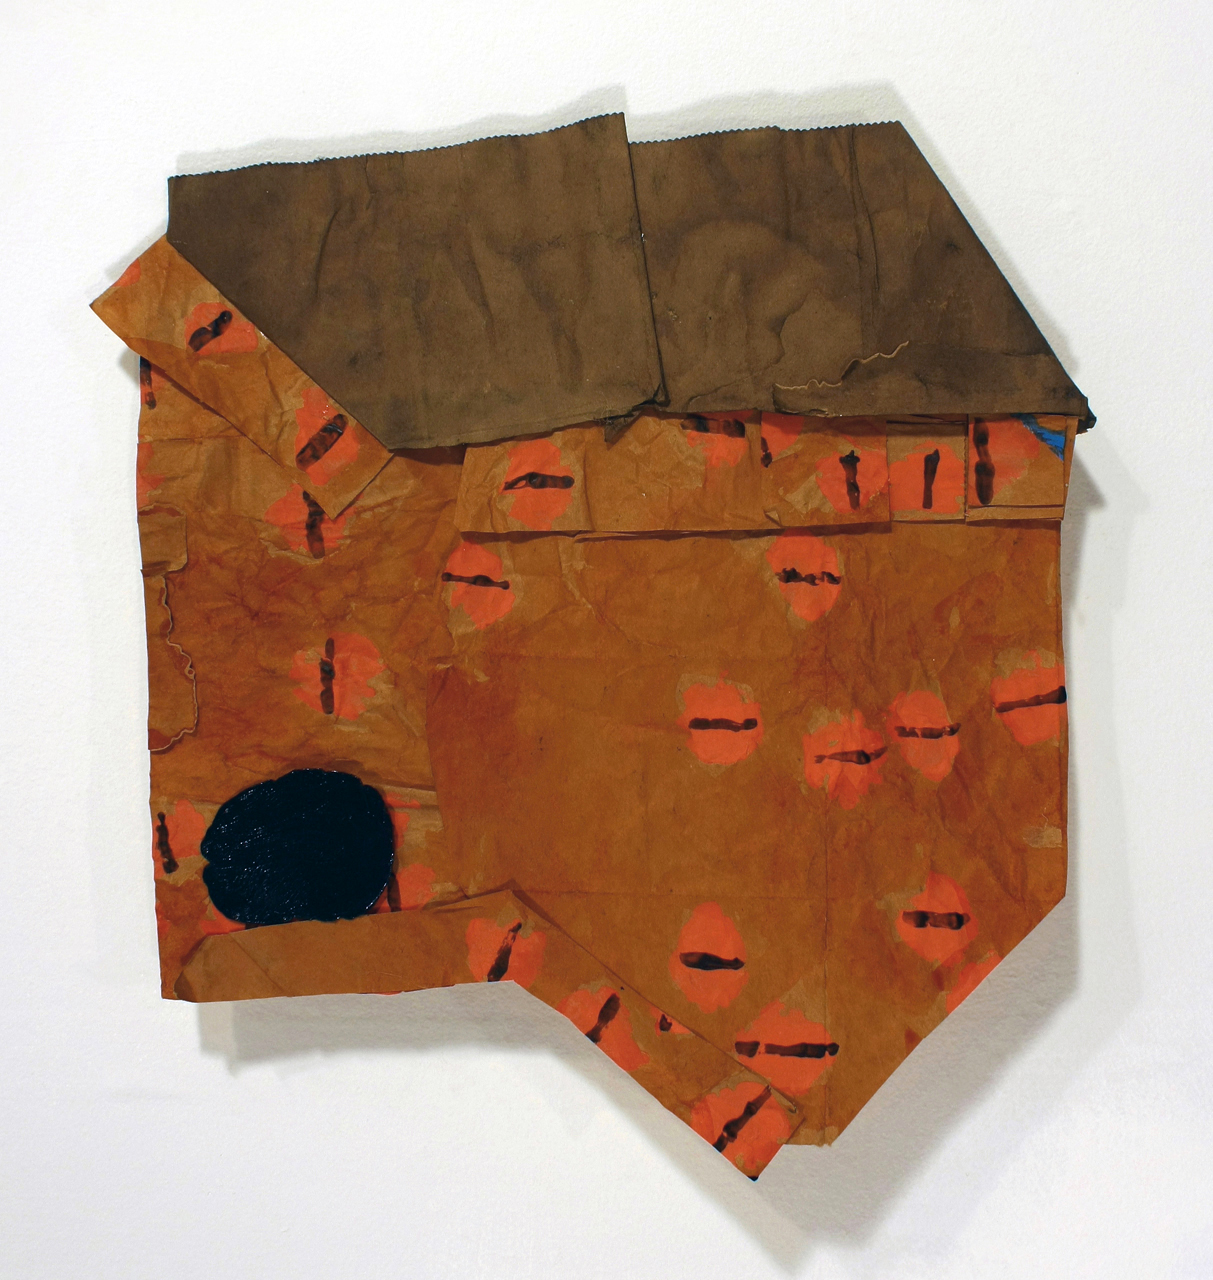 Bridget Mullen Archive Brown paper bag, folder paper, ink, acrylic paint